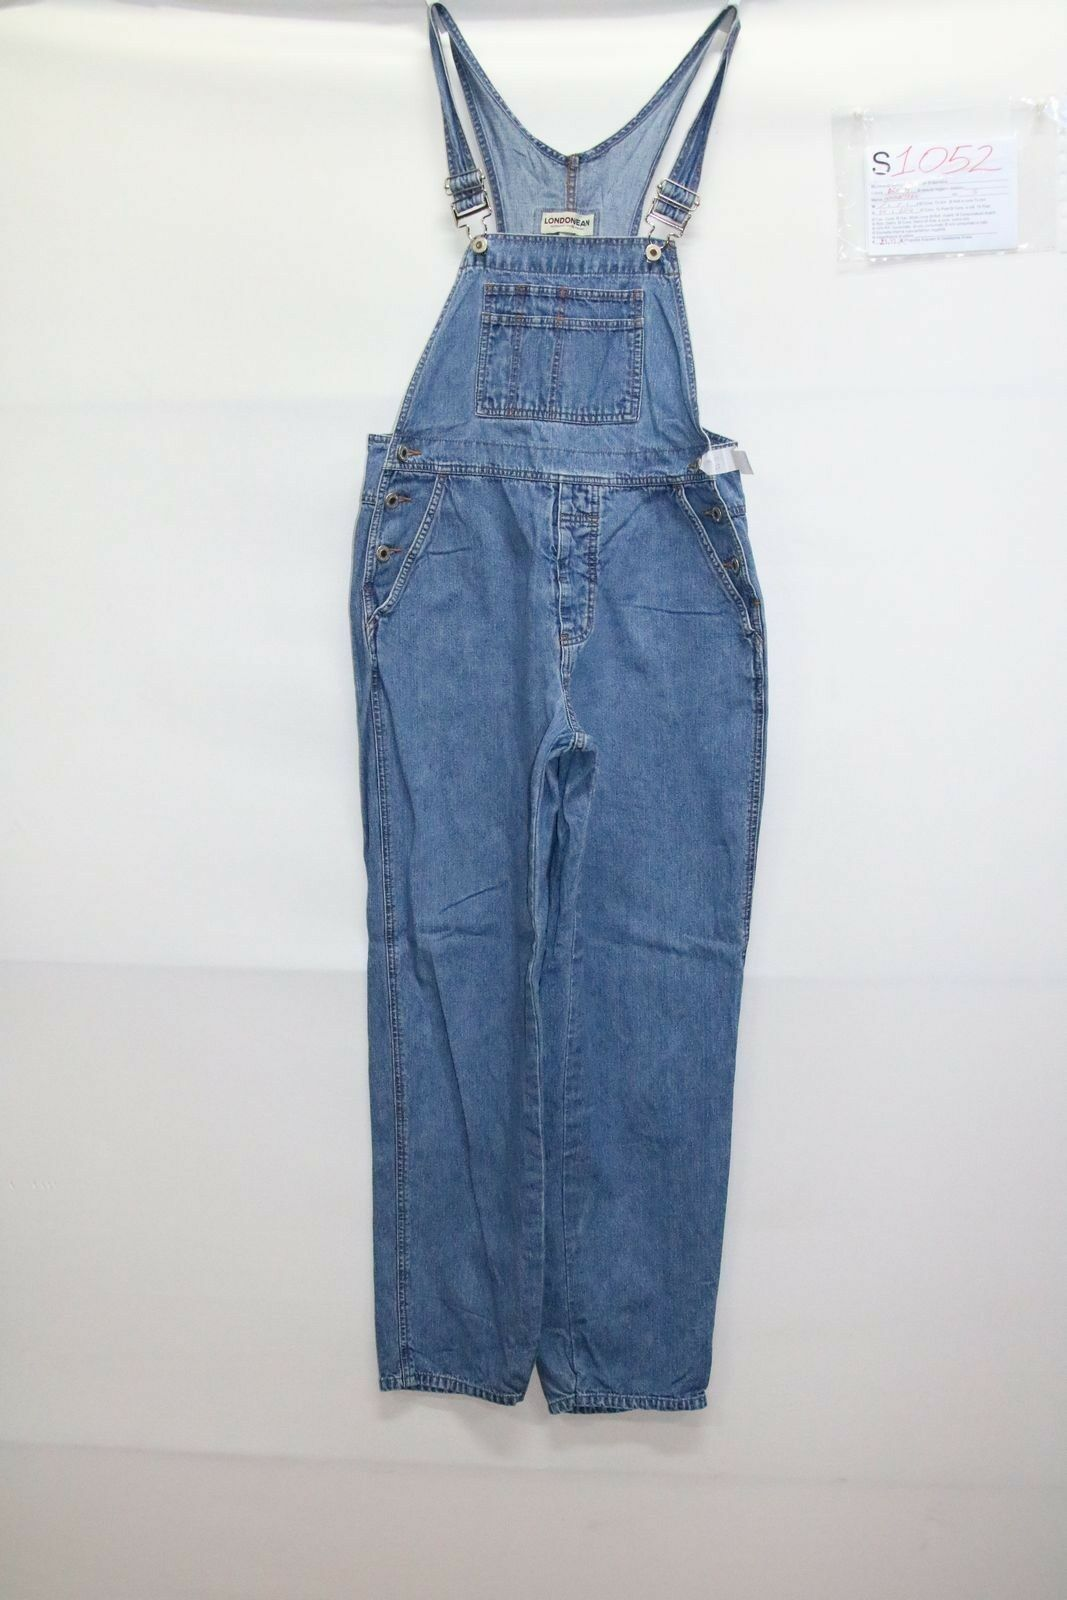 Dungarees London JEAN ( COD. S1052) Size S Jeans Used Vintage Work